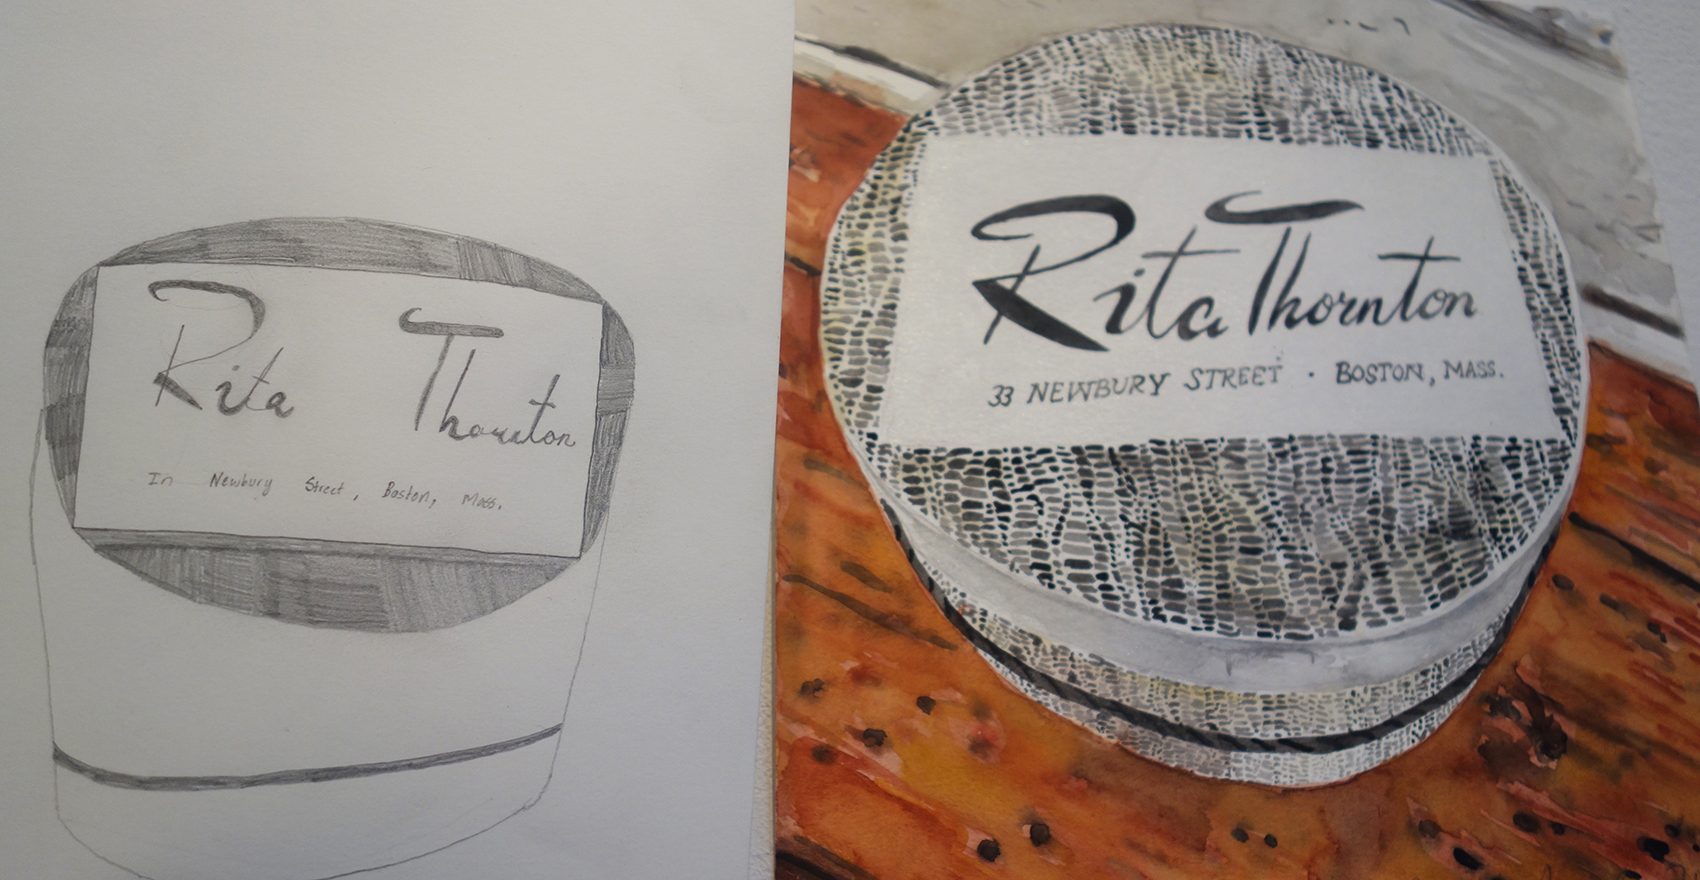 5x Rita Thornton hat box with kids drawi